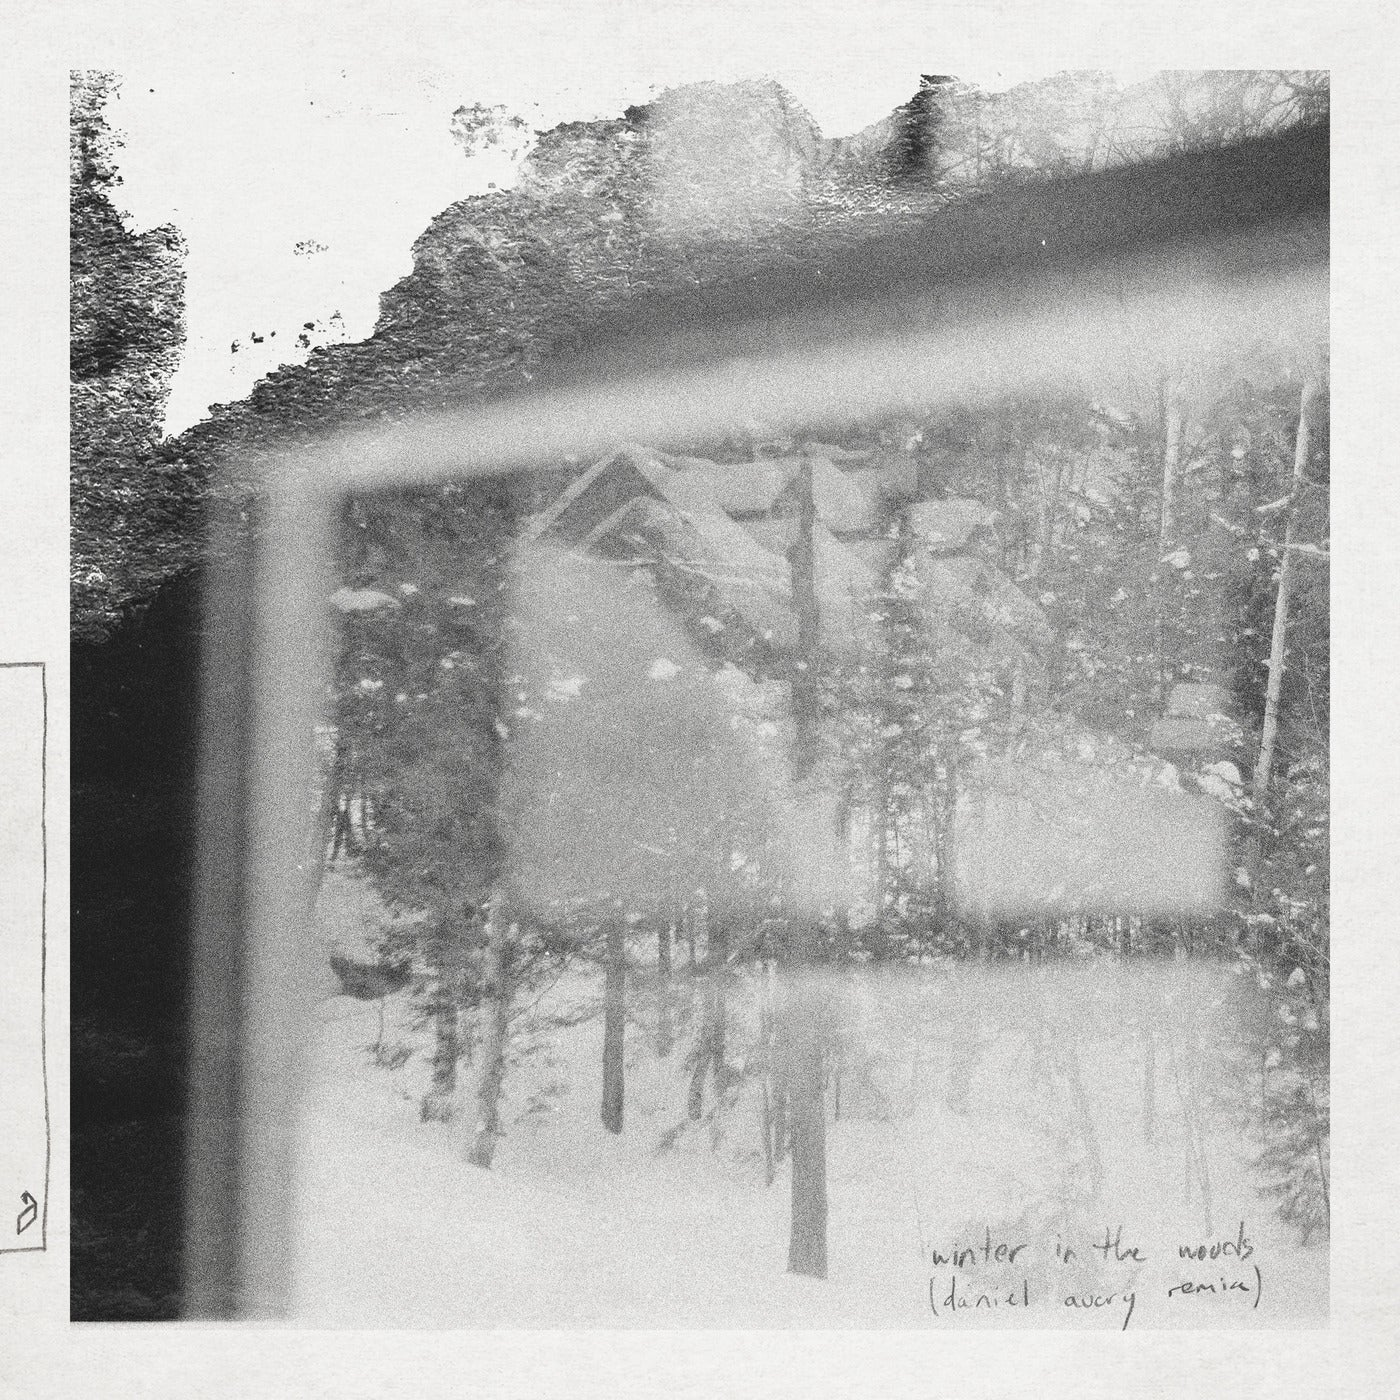 Winter In The Woods (Daniel Avery Remix)